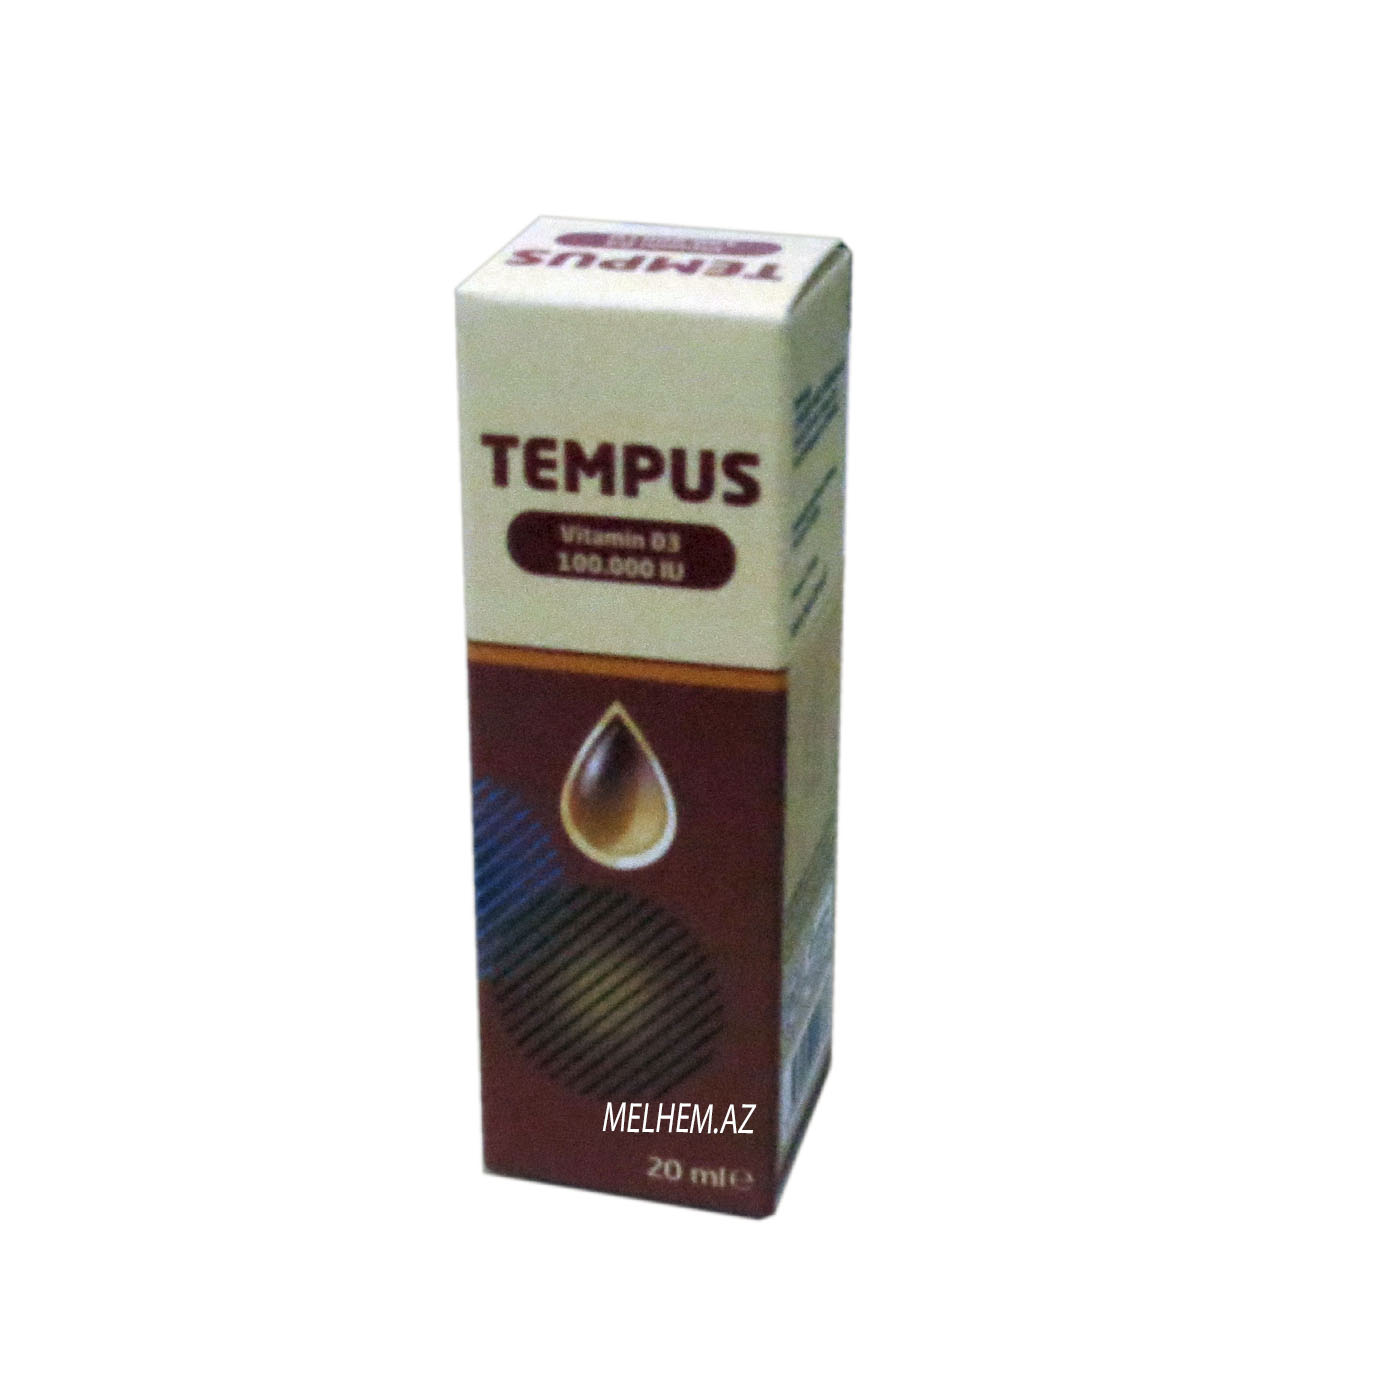 TEMPUS  (VİTAMİN D3) 20 ML